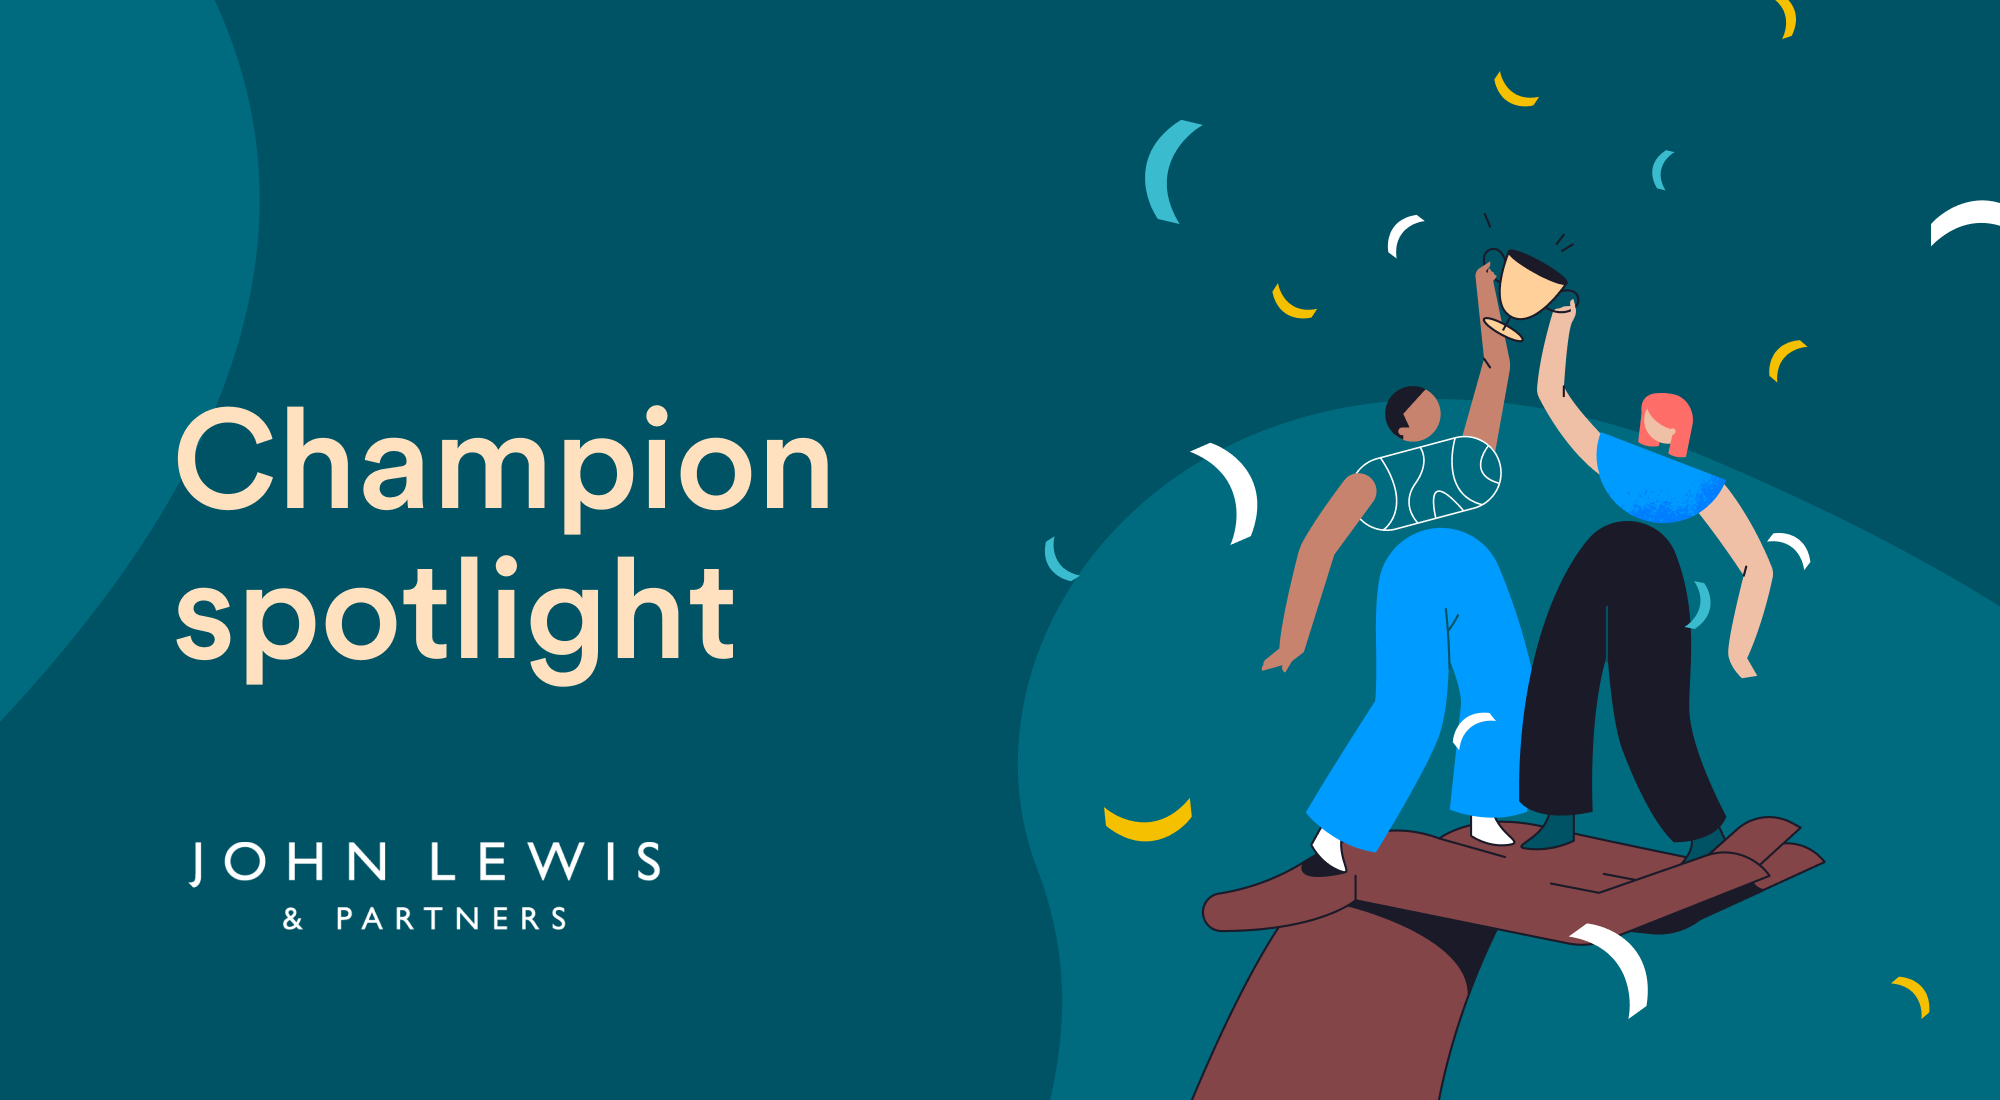 Champion spotlight: Vlogs, dogs and mental health with John Lewis Partnership